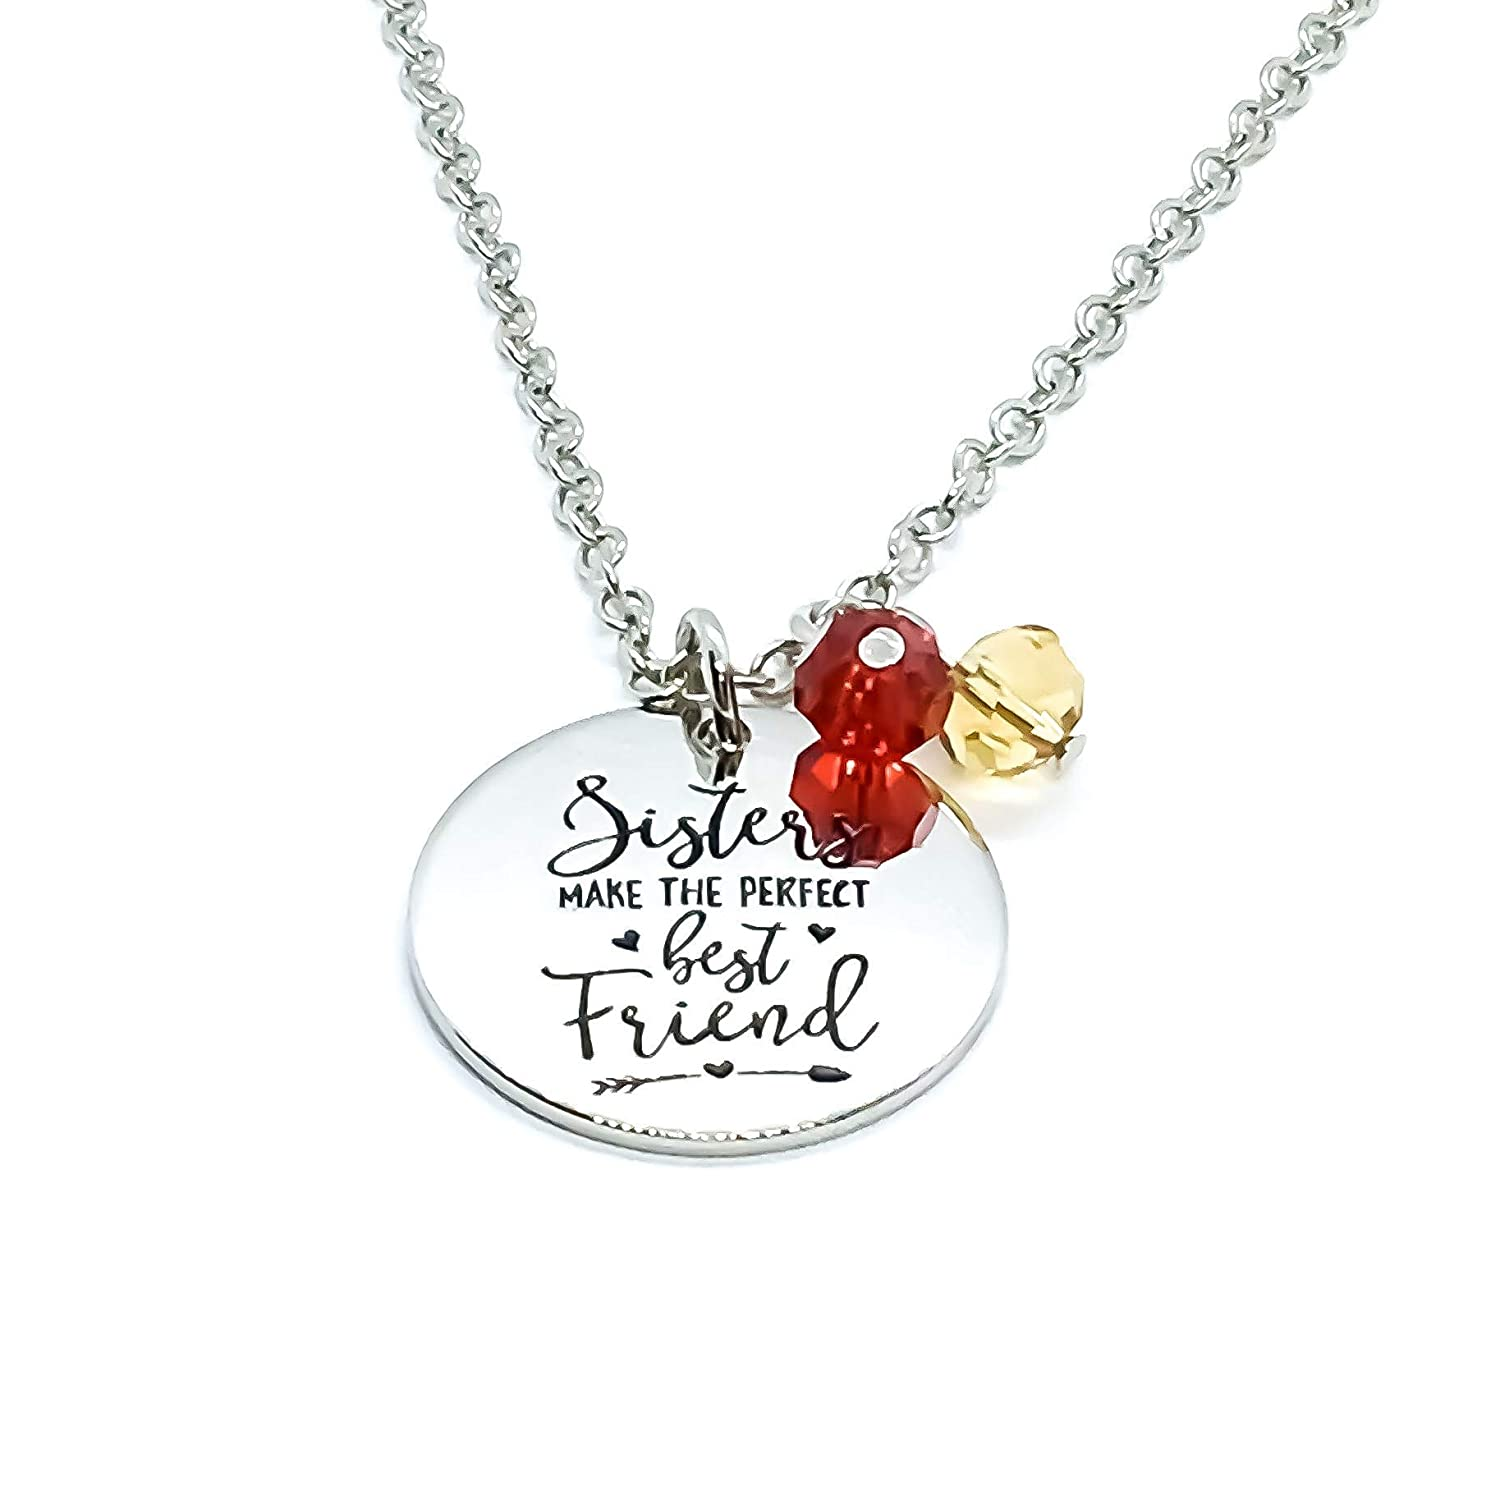 Sisters Make The Perfect Best Friend Stainless Steel Silver Necklace Handmade